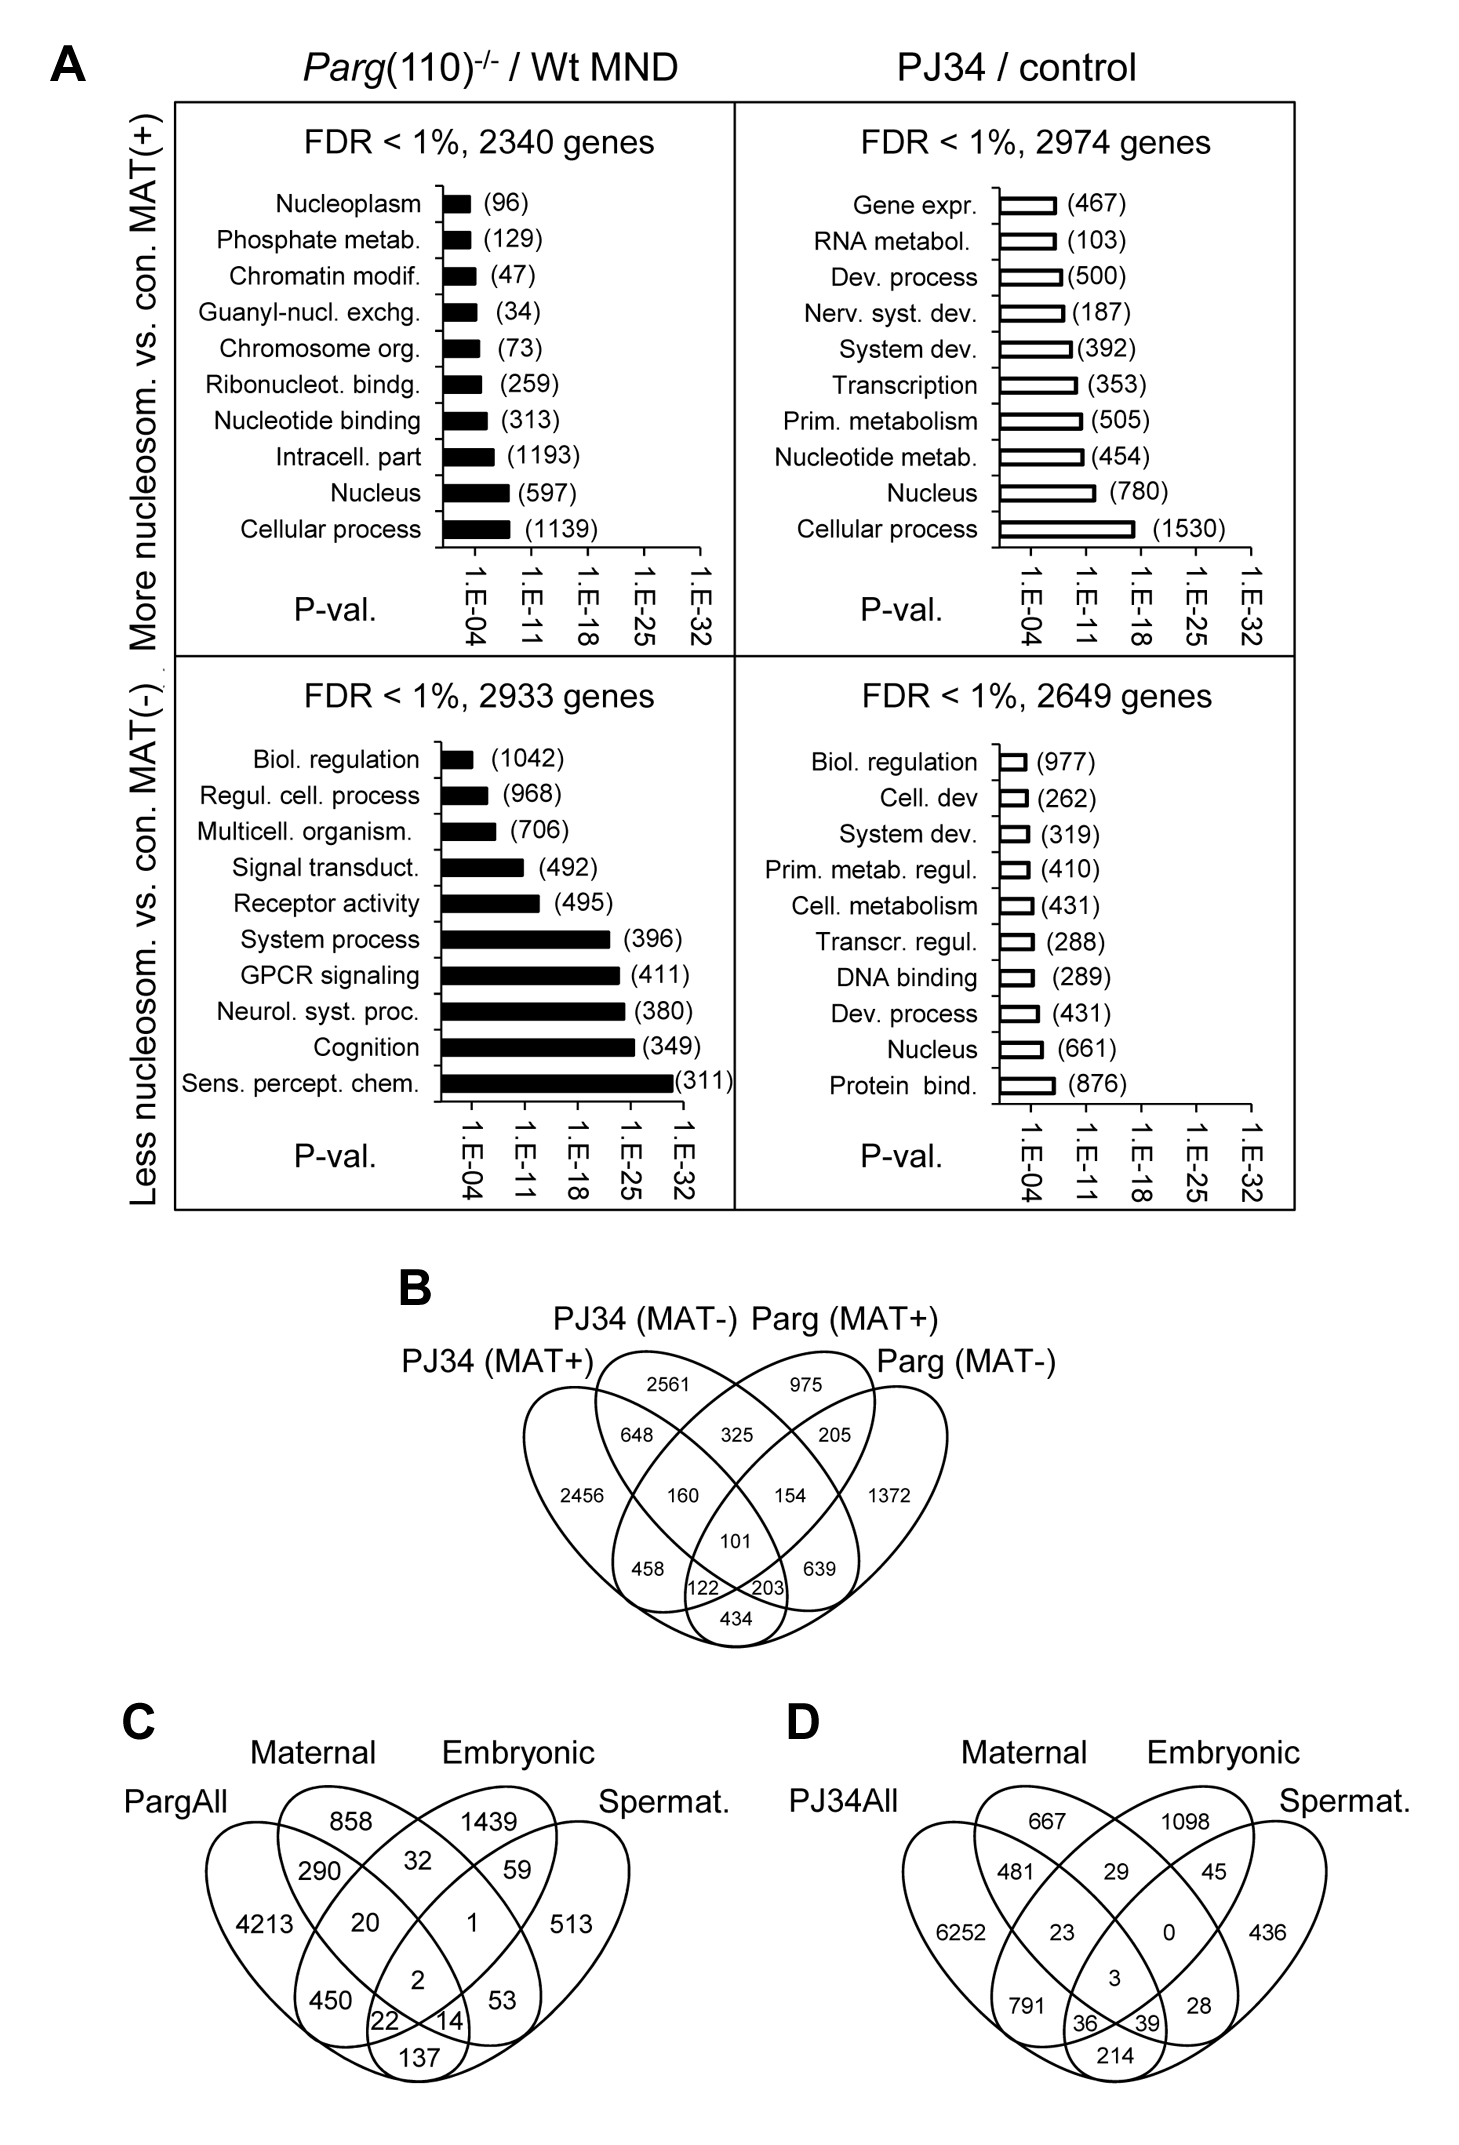 Perturbing PAR metabolism results in differential sperm histone association of gene loci with either excessive or reduced retention of nucleosomes.